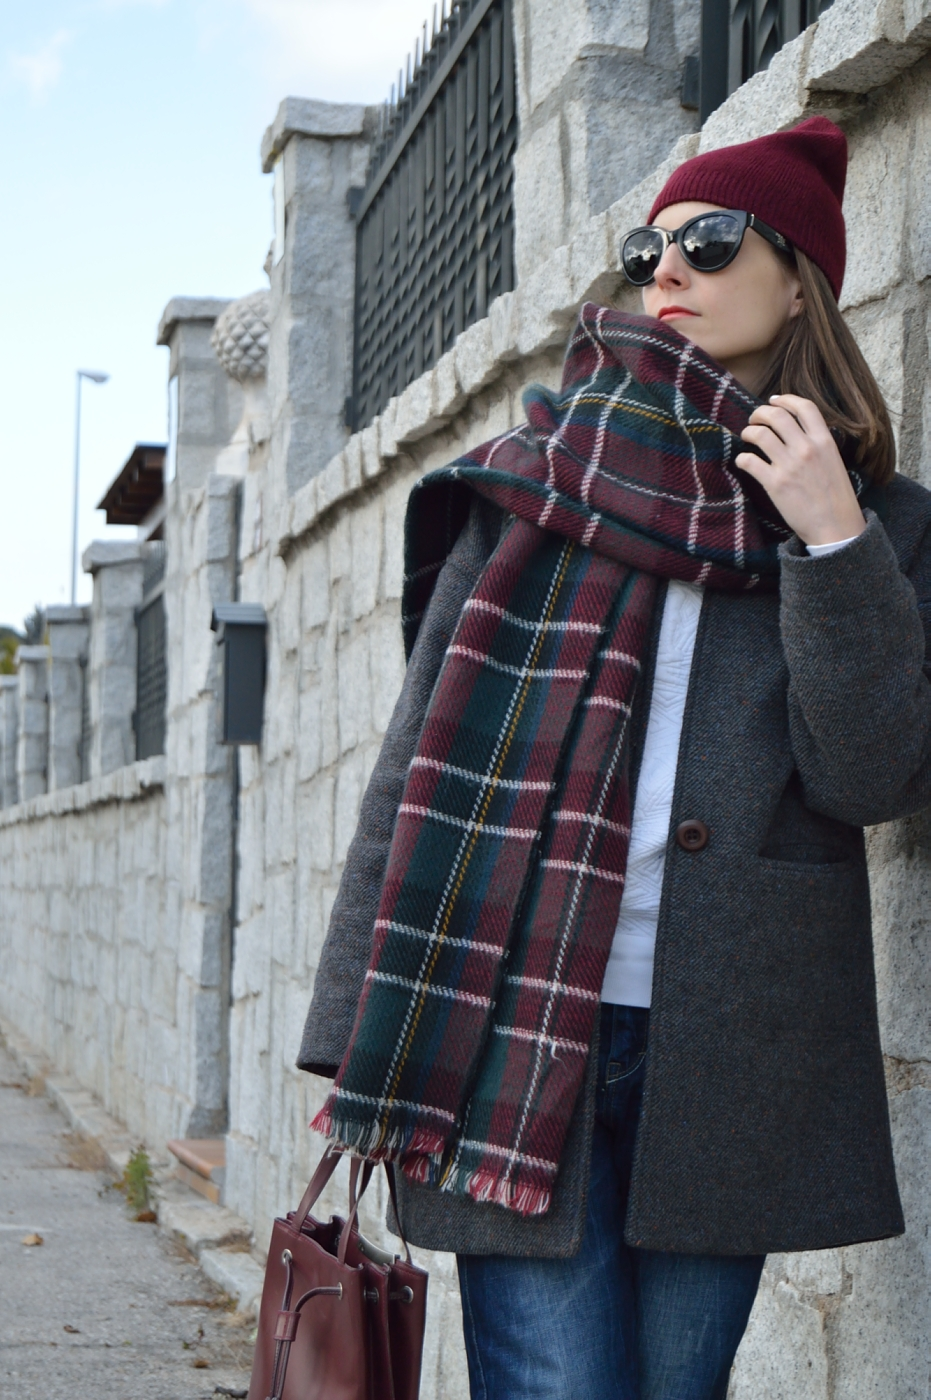 lara-vazquez-mad-lula-burgundy-ootd-fashion-style